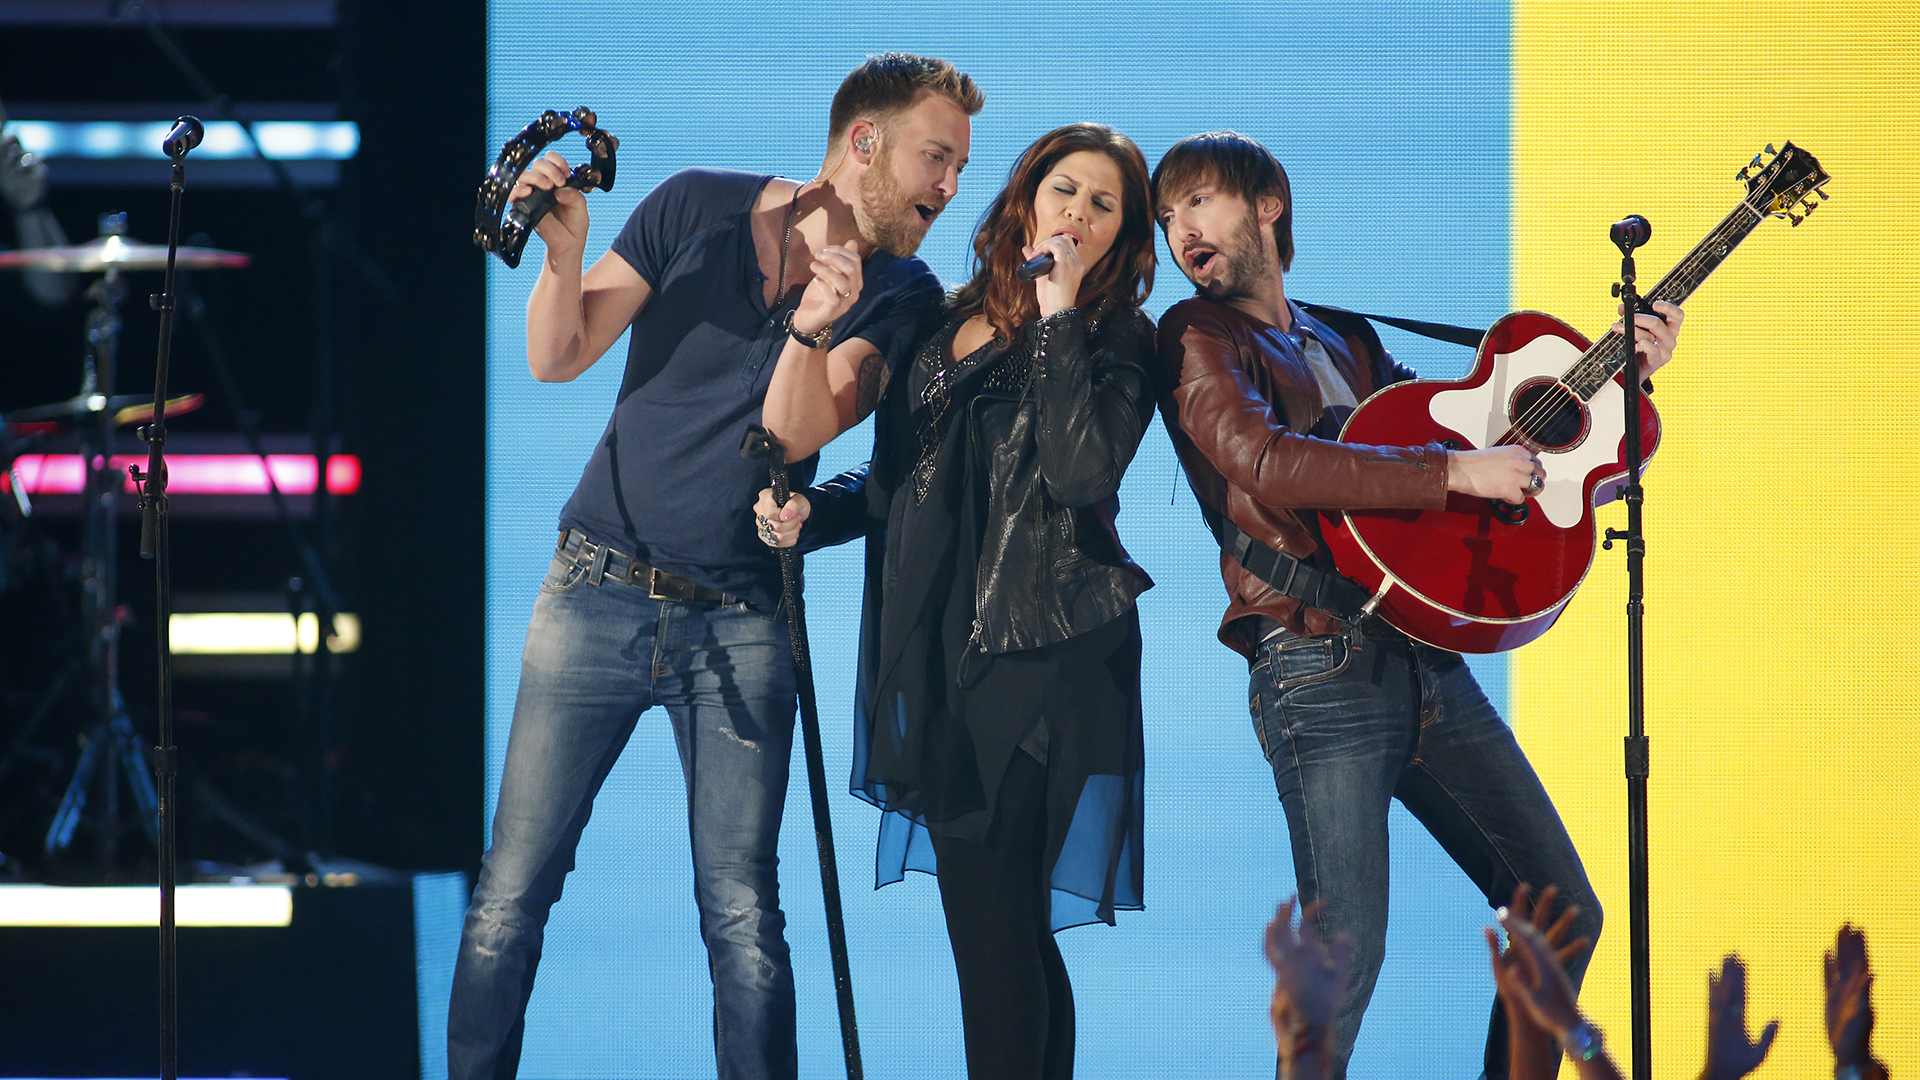 13. Lady Antebellum perform